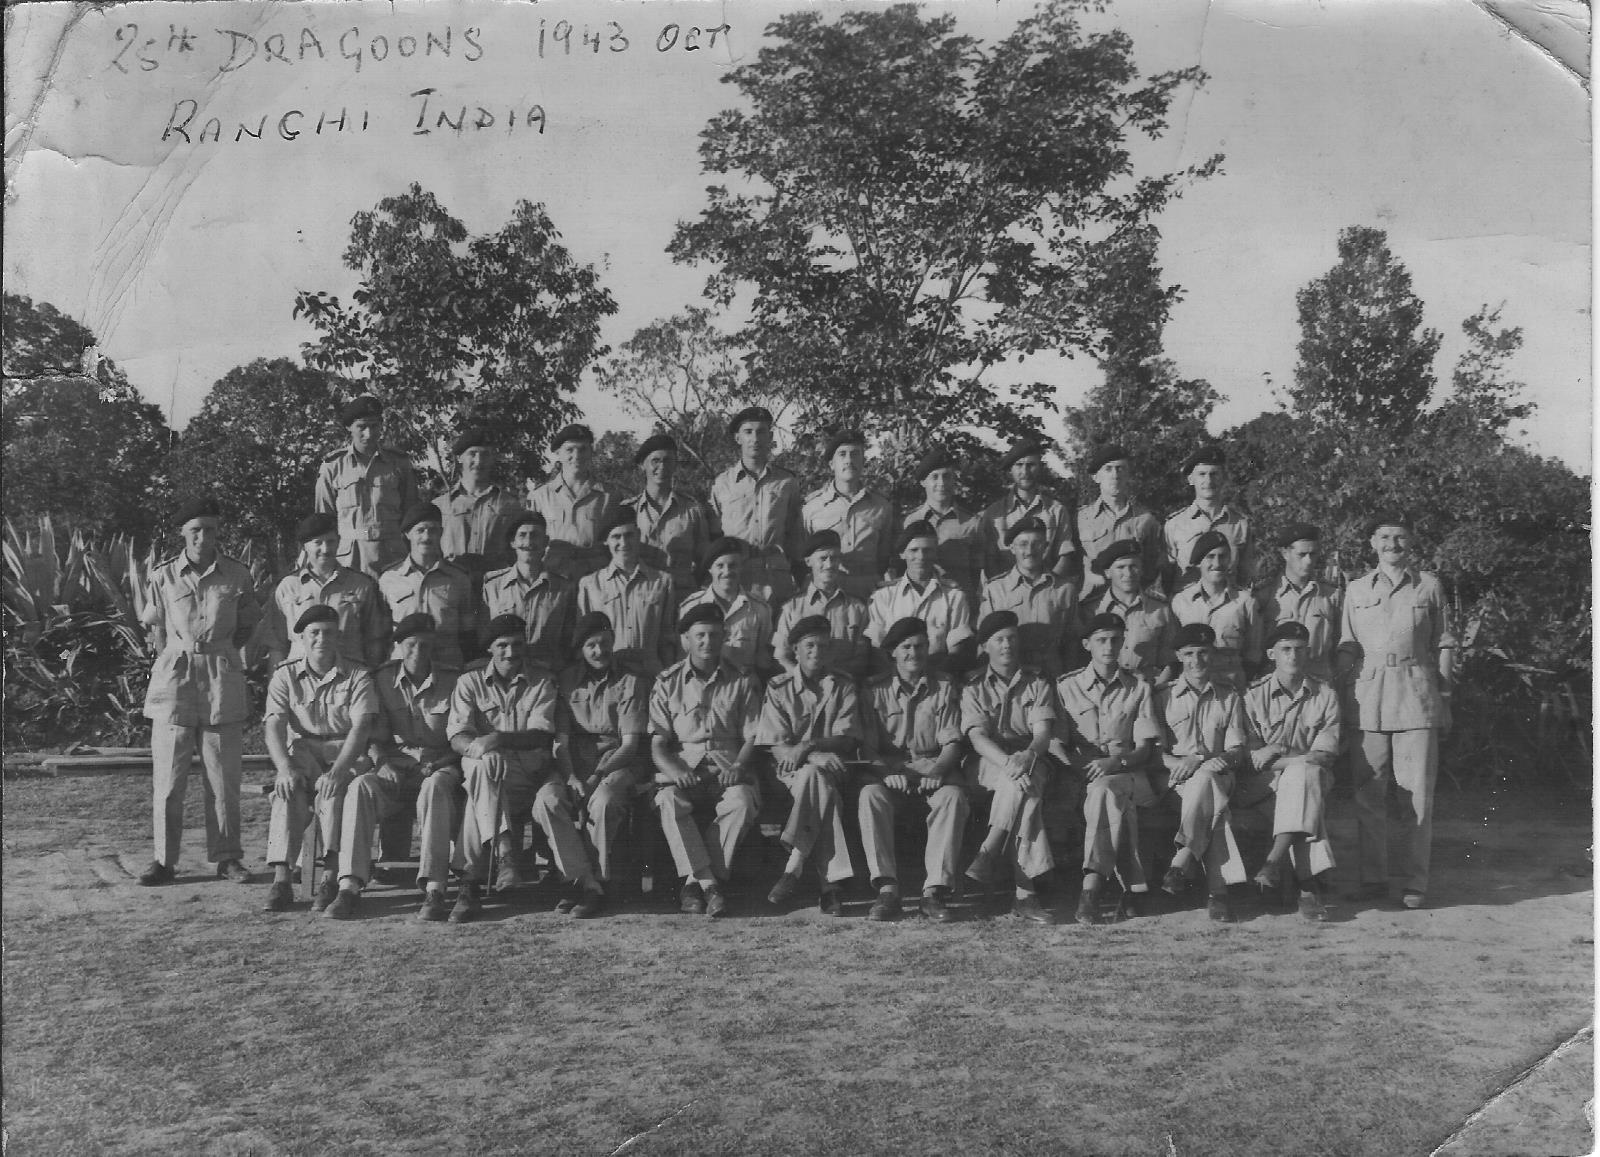 25th Dragoons Ranchi, India. October 1943